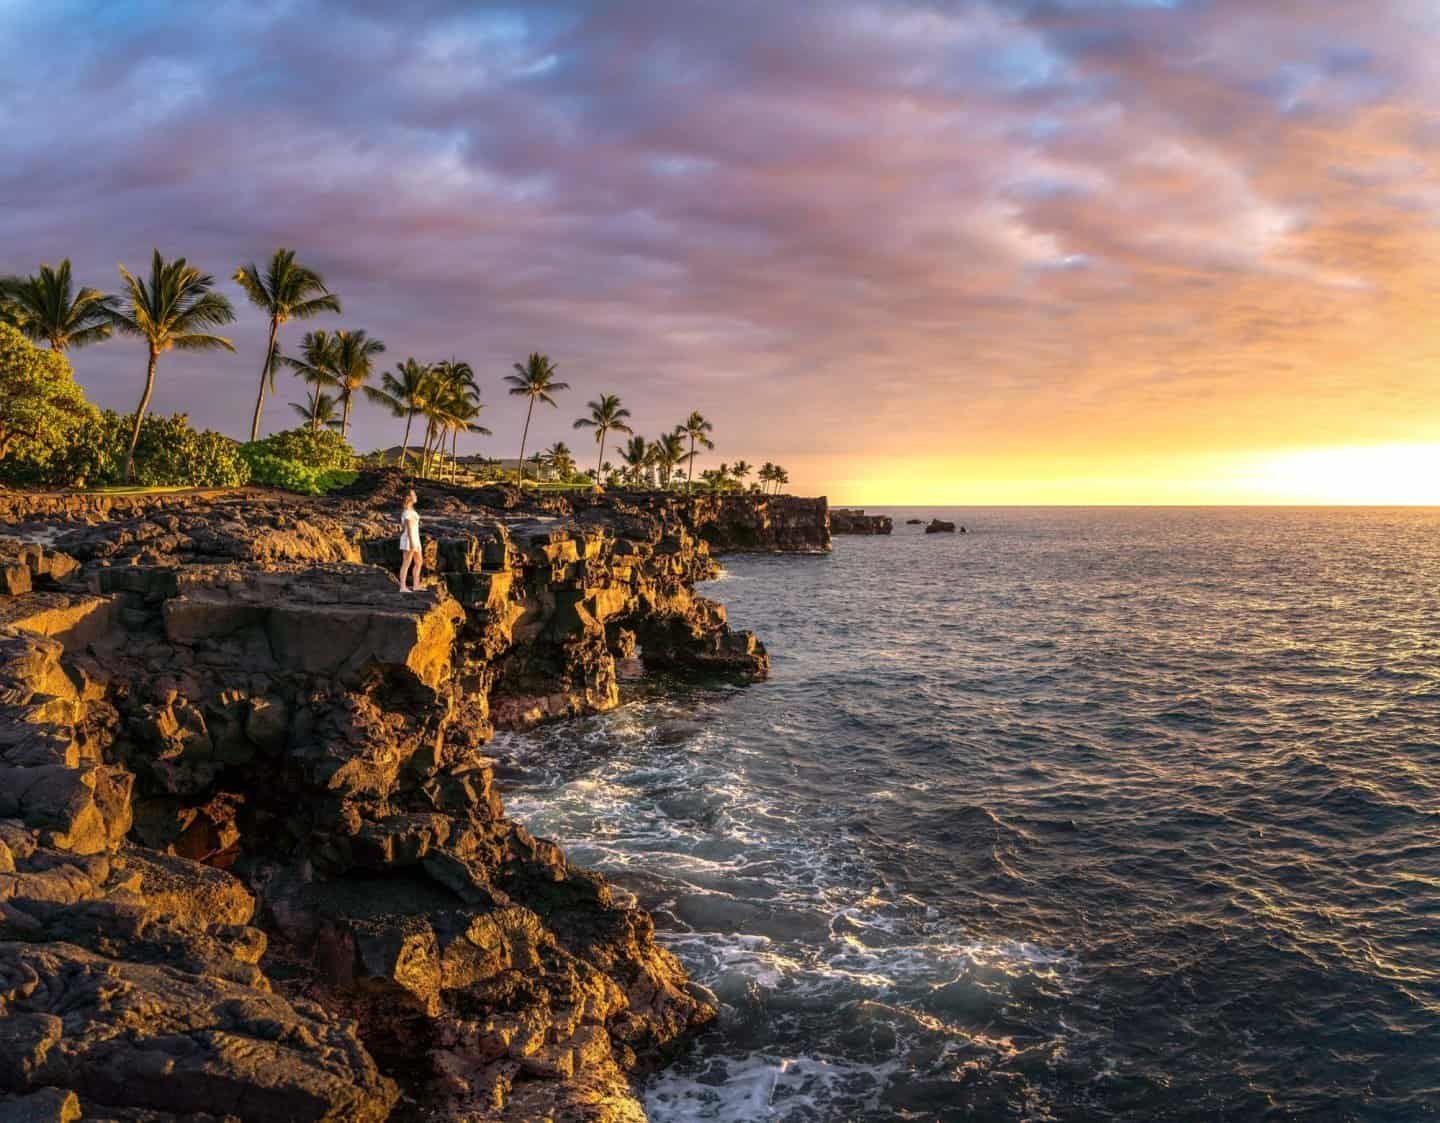 A beautiful big island photography location: Taking in a sky fire sunset from the sea cliffs near the Sheraton Kona on the Big Island Hawaii.